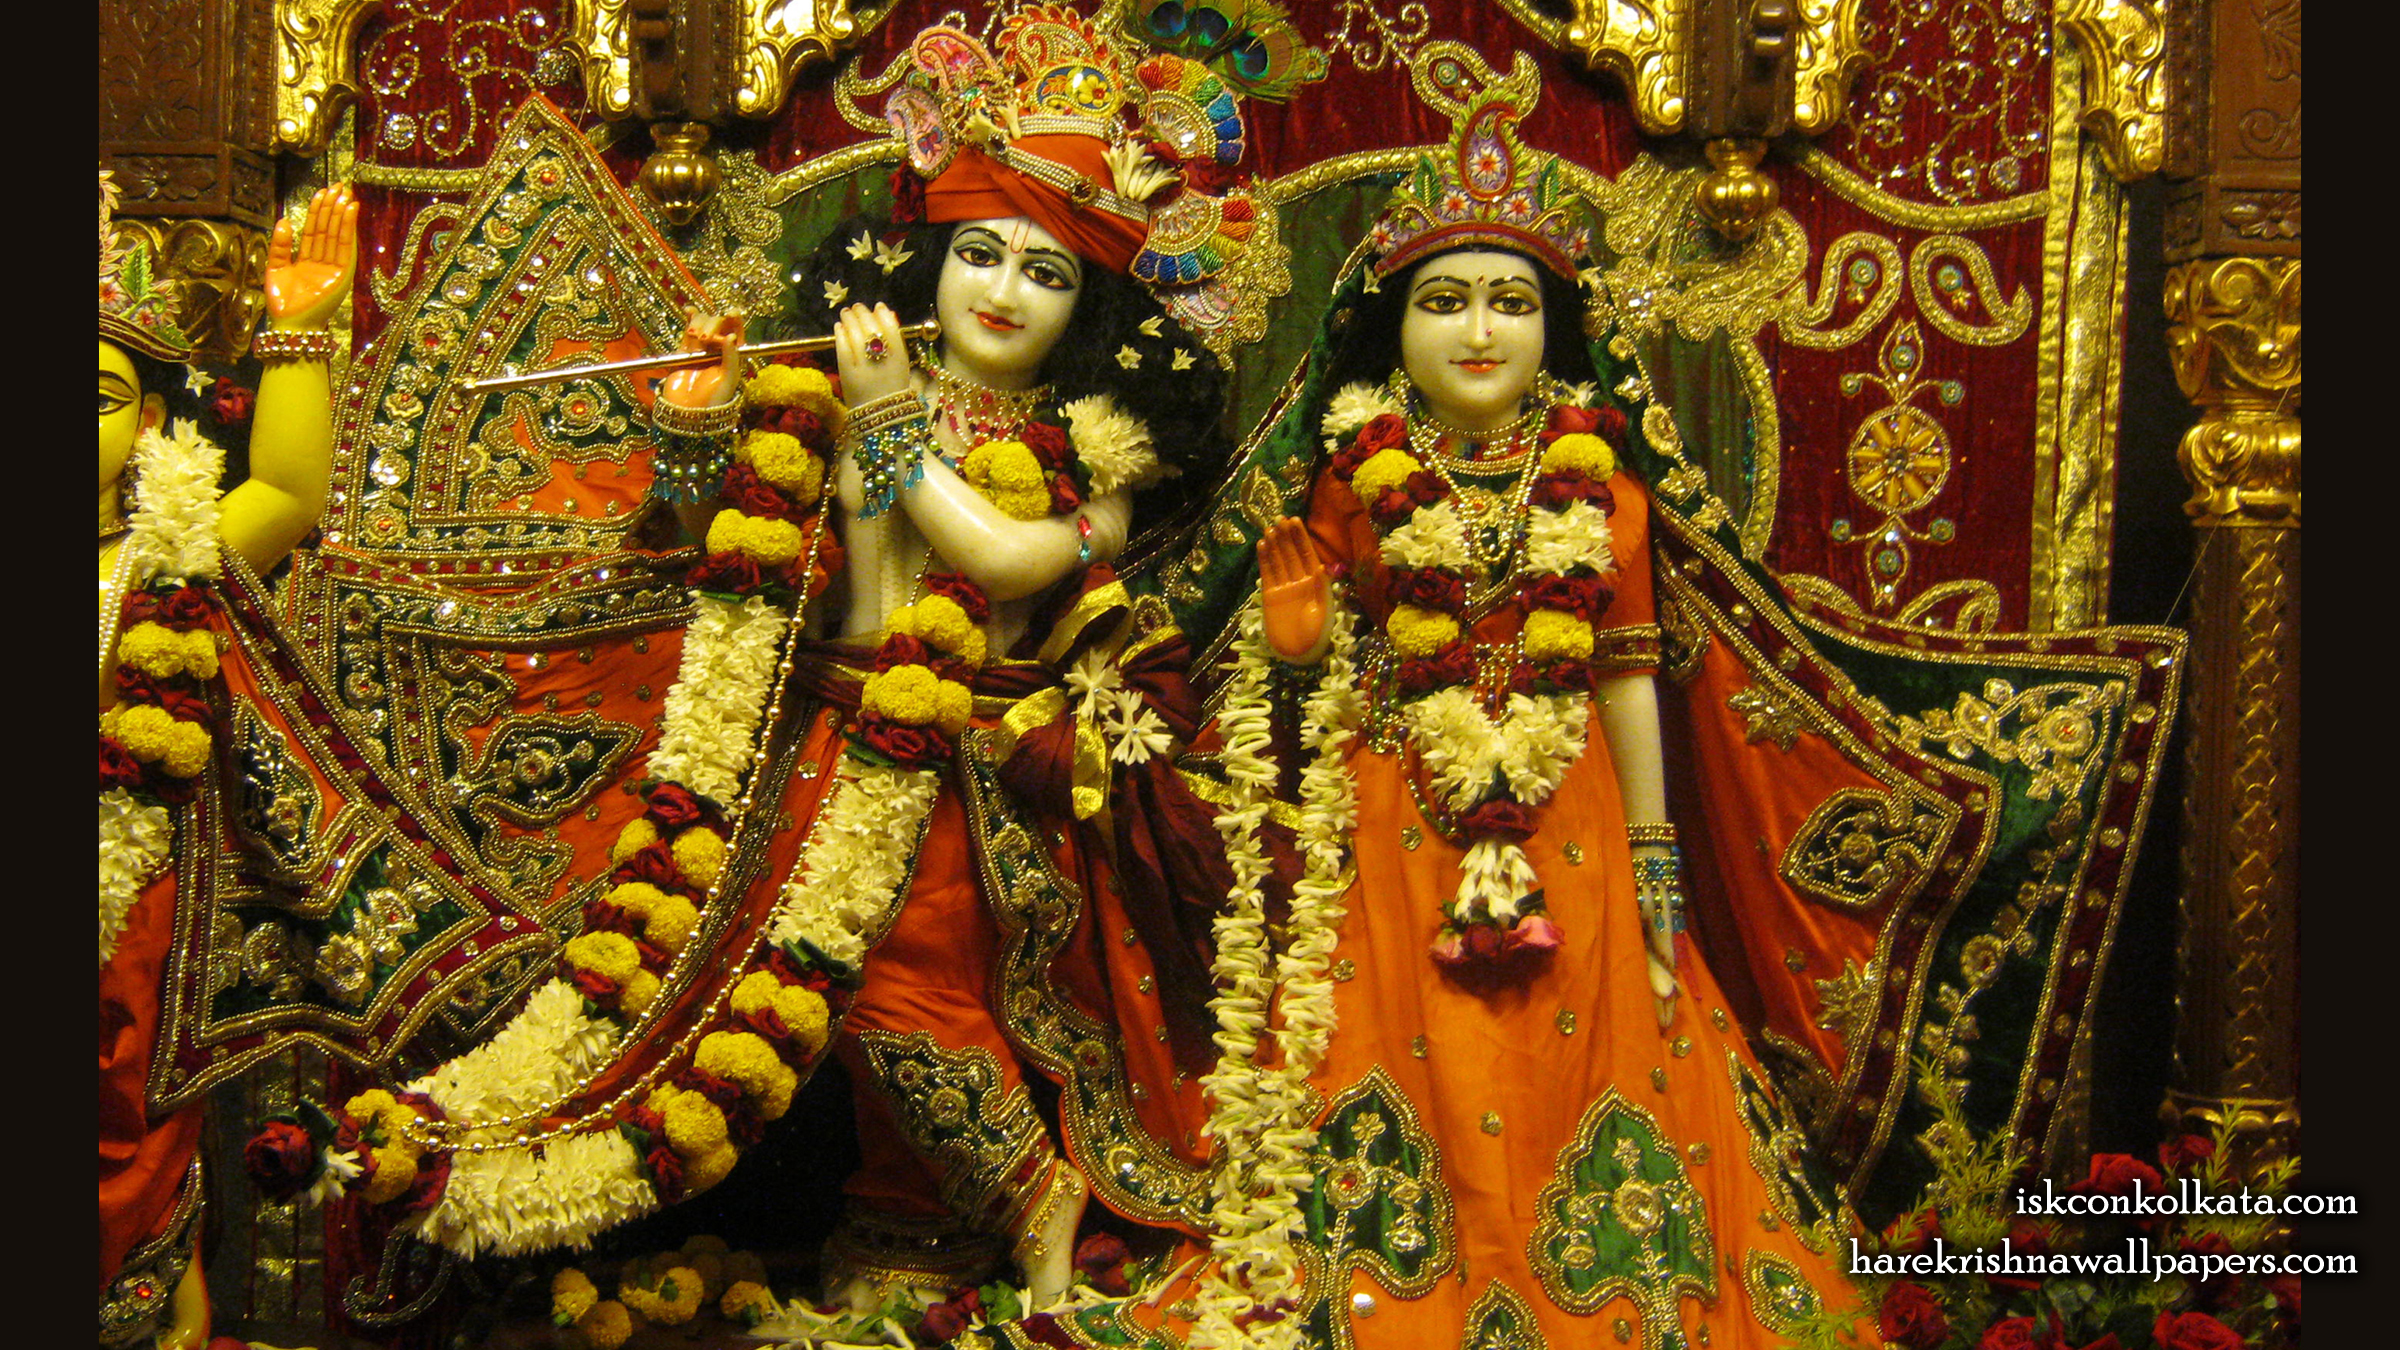 Sri Sri Radha Govinda Wallpaper (002) Size 2400x1350 Download